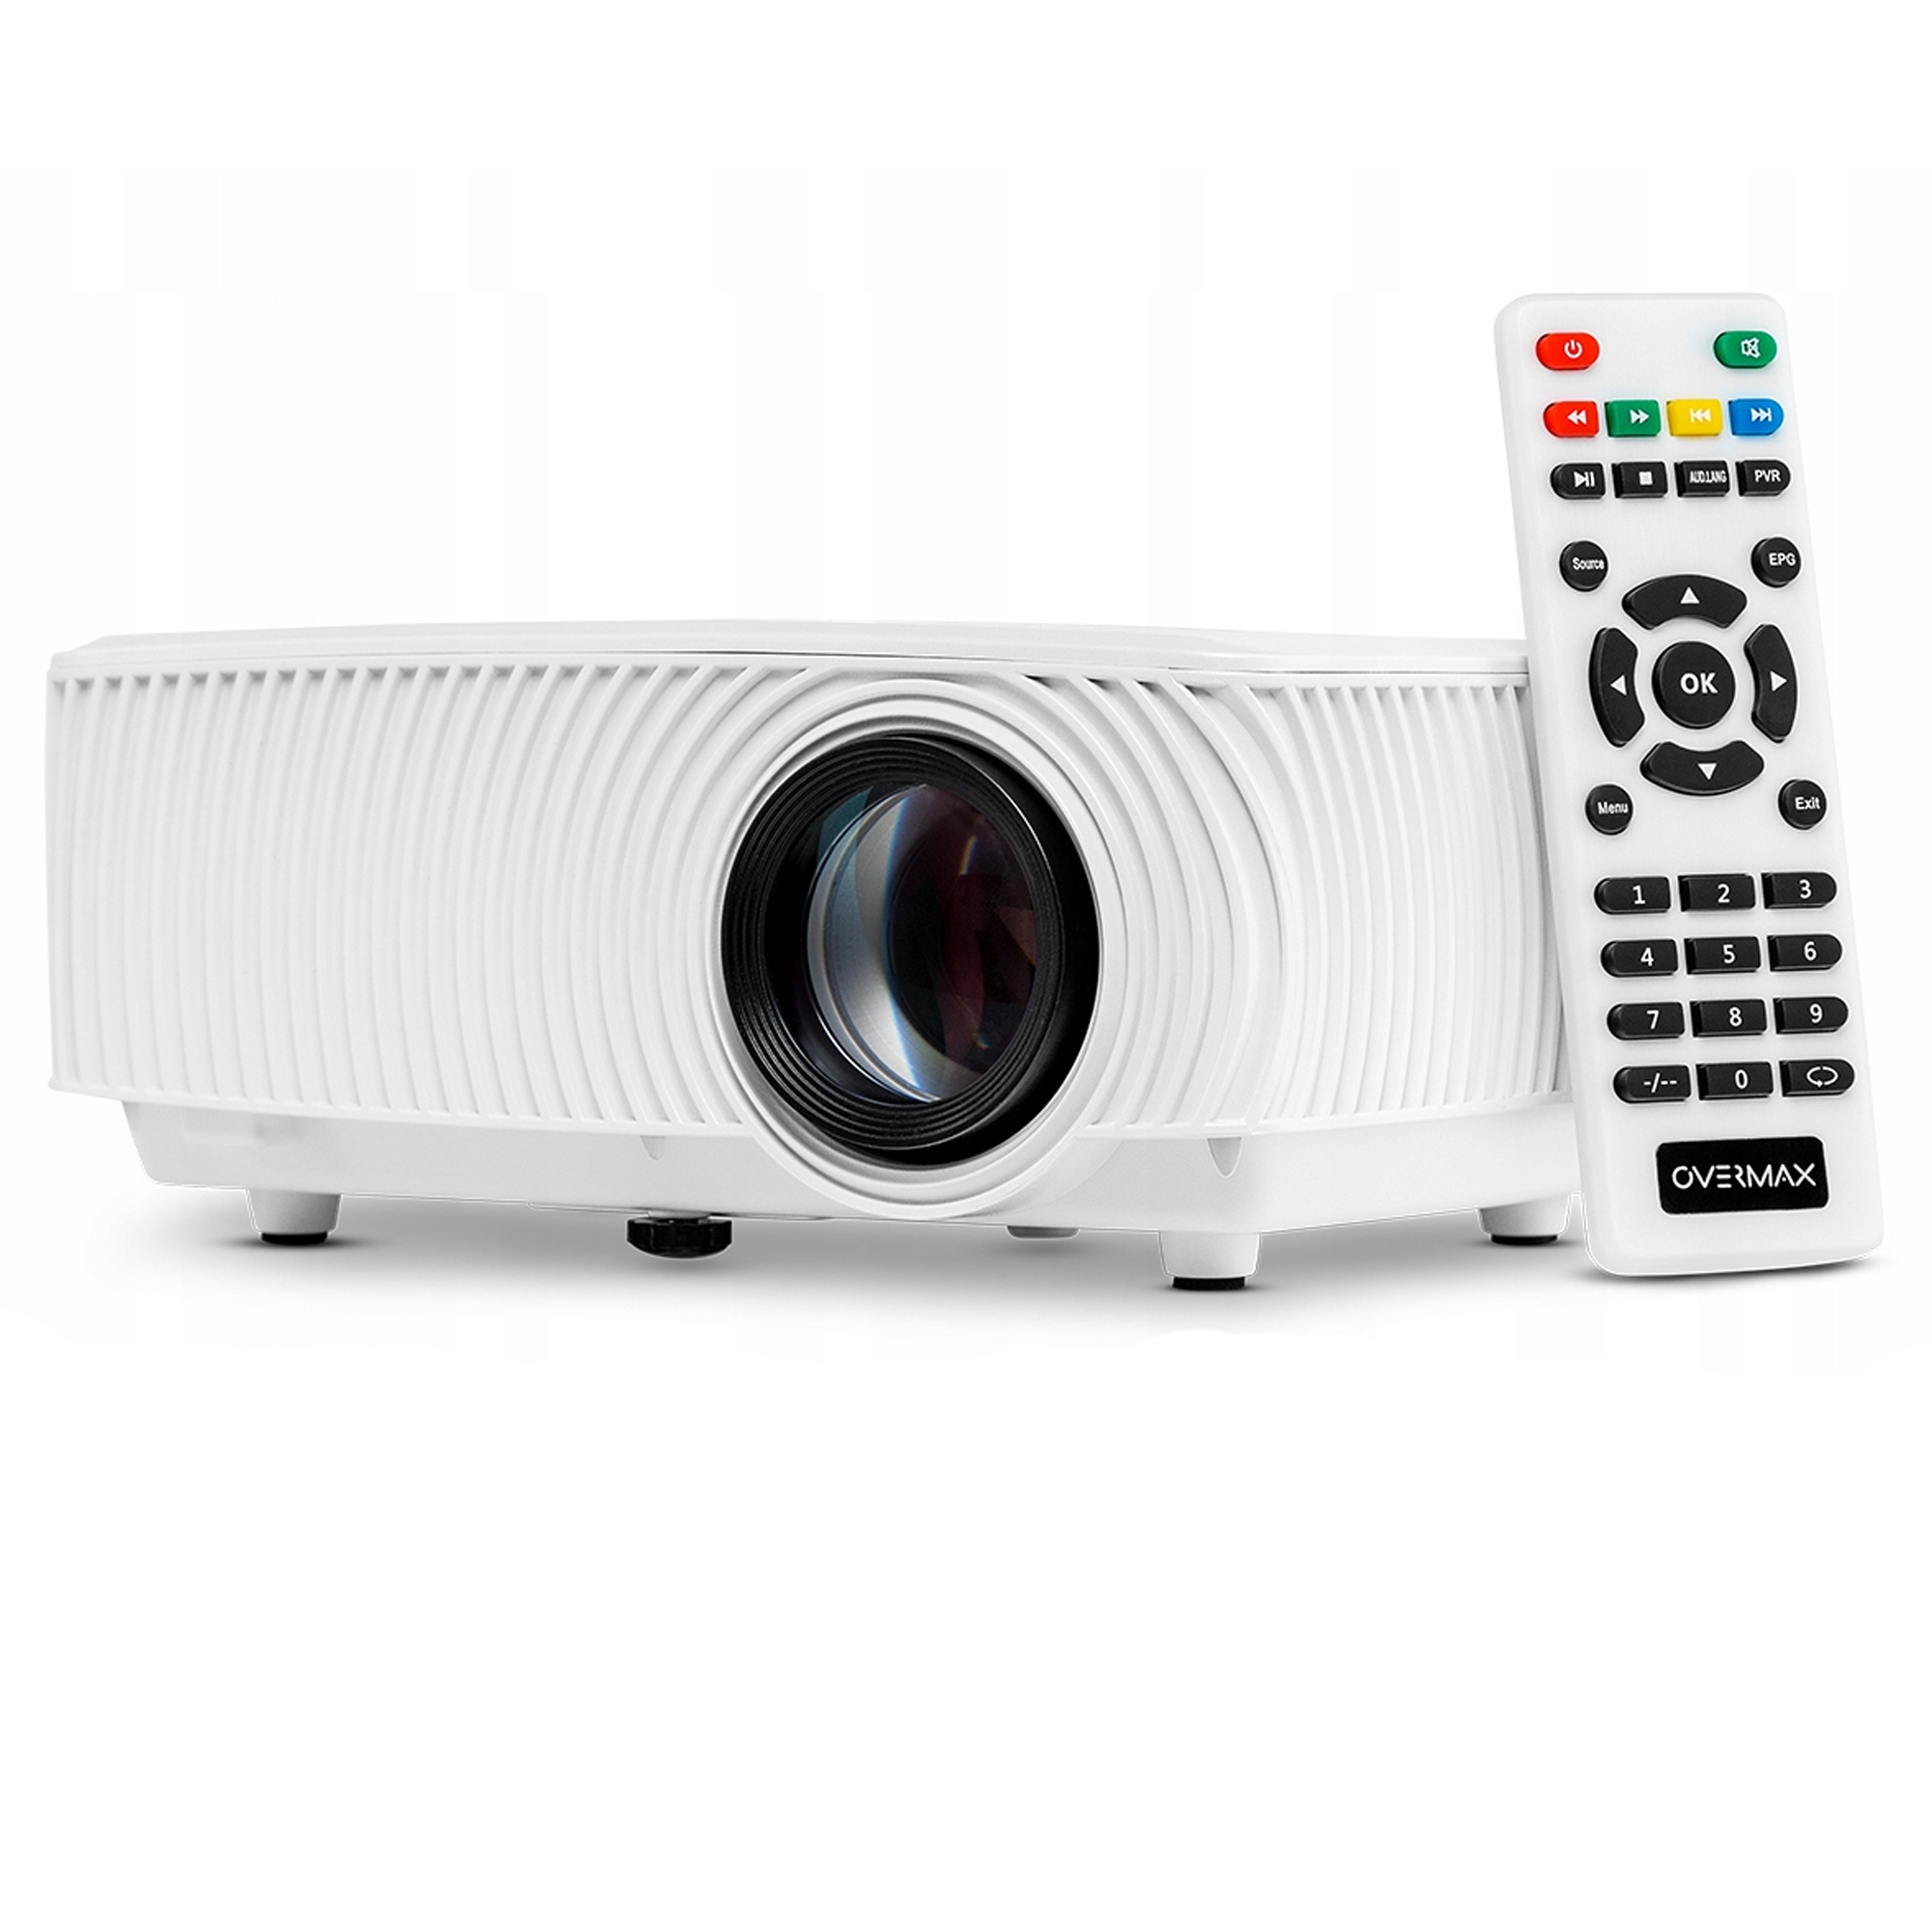 PROJECTOR OVERMAX MULTIPIC 2.3 LED HD WIFI ПРОЕКТОР